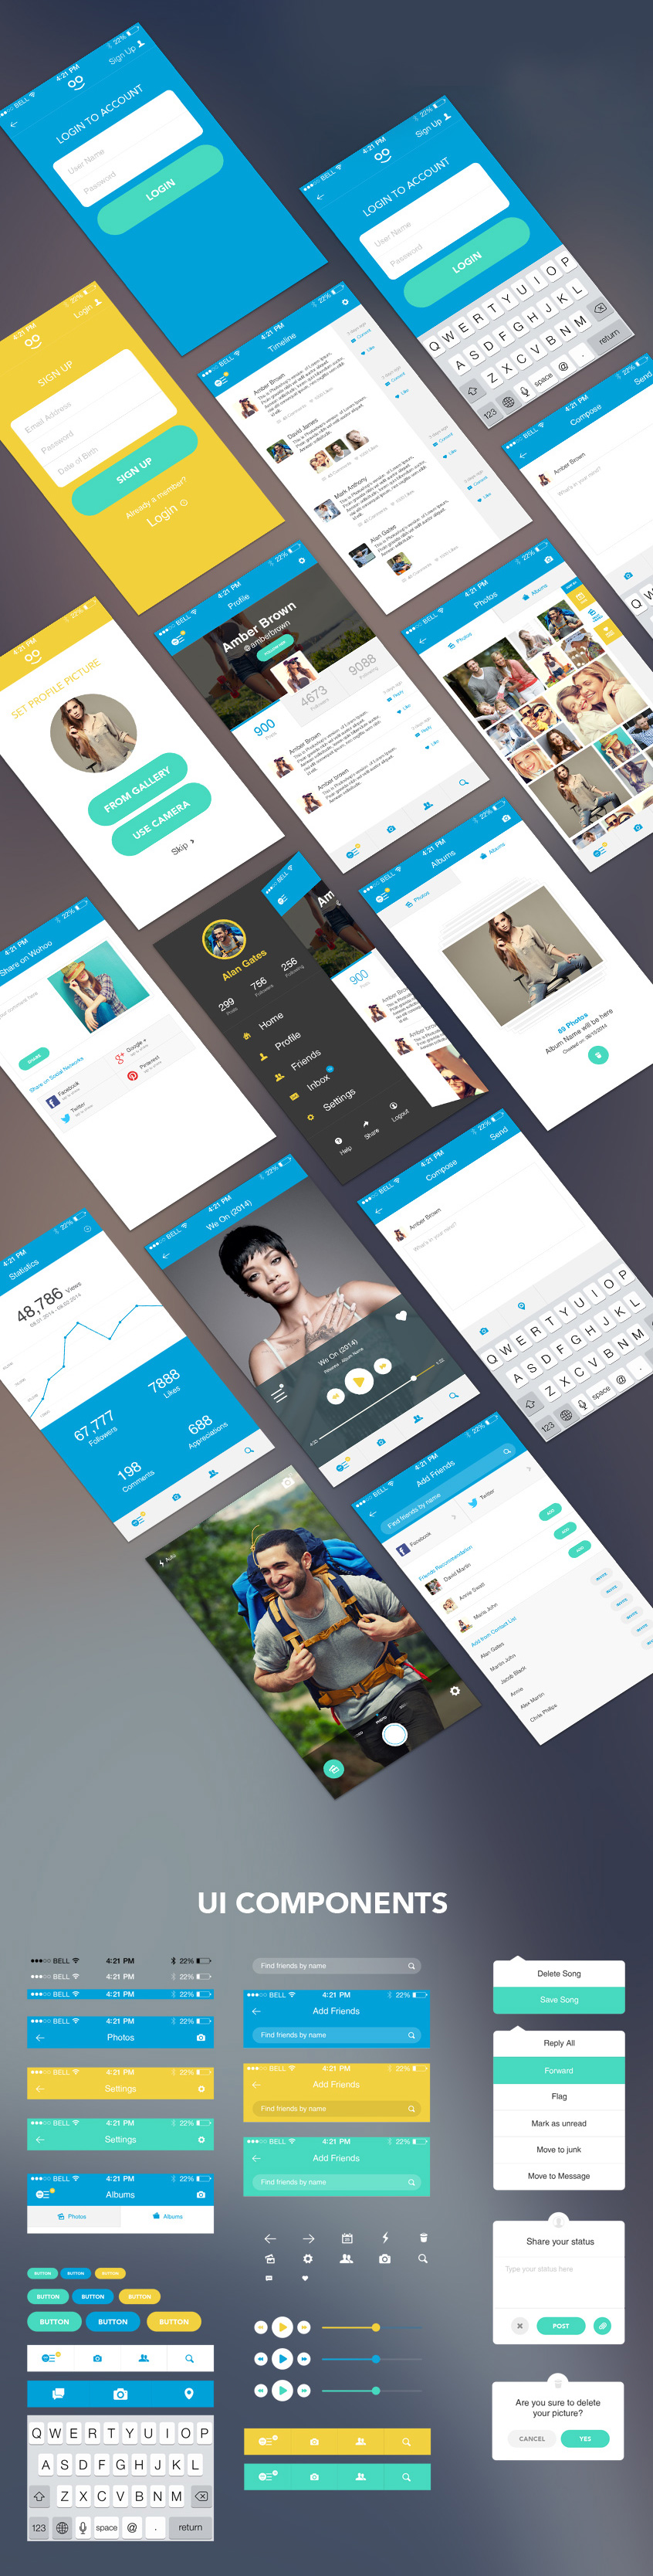 http://www.graphicsfuel.com/wp-content/uploads/2015/04/free-mobile-app-ui-kit-full-view.jpg